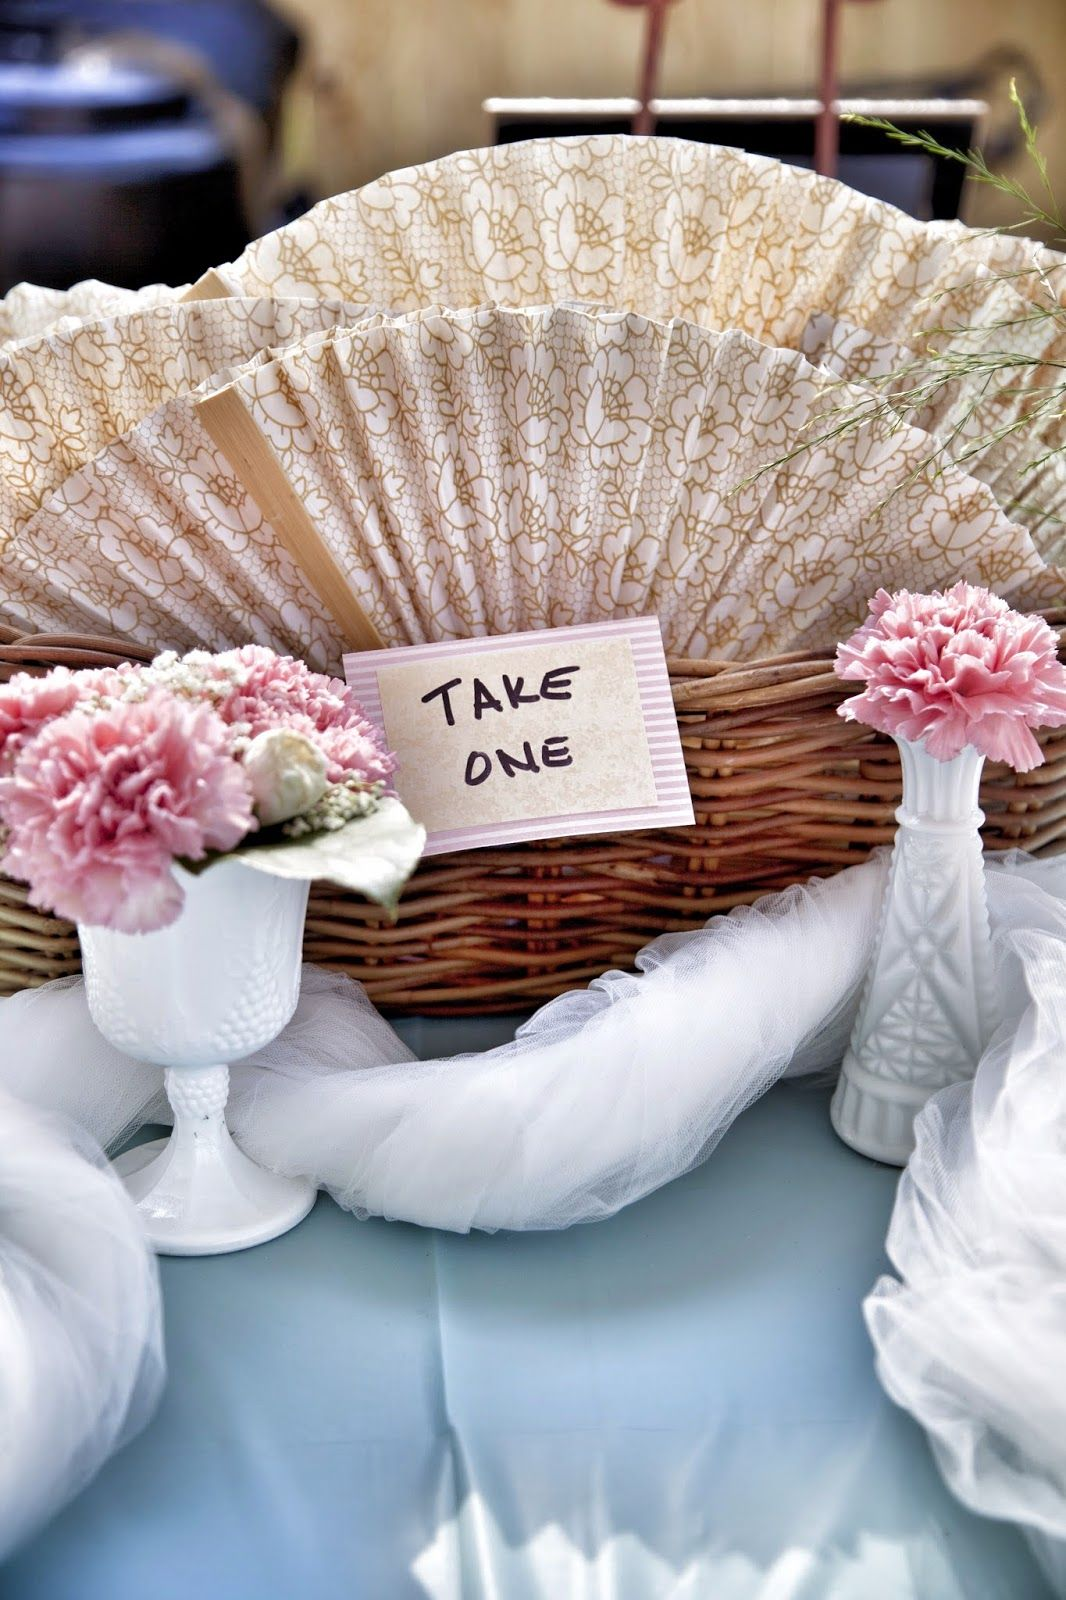 PAPER FANS for hot temp wedding Lola Tangled DIY Vintage Backyard